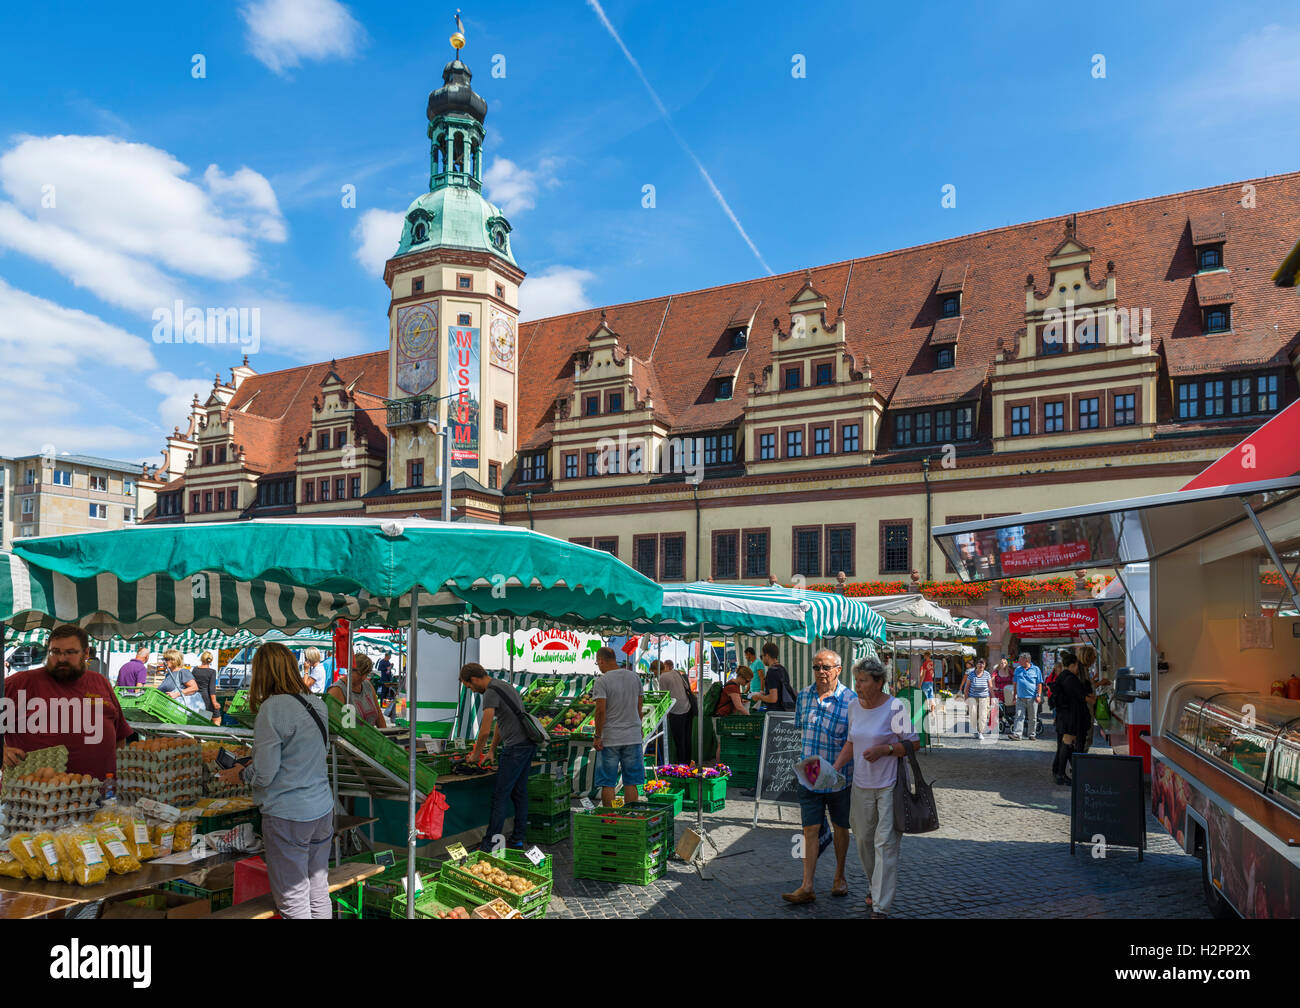 Market in the Markt (Market Square) looking towards the Altes Rathaus (Old Town Hall), Leipzig, Saxony, Germany - Stock Image